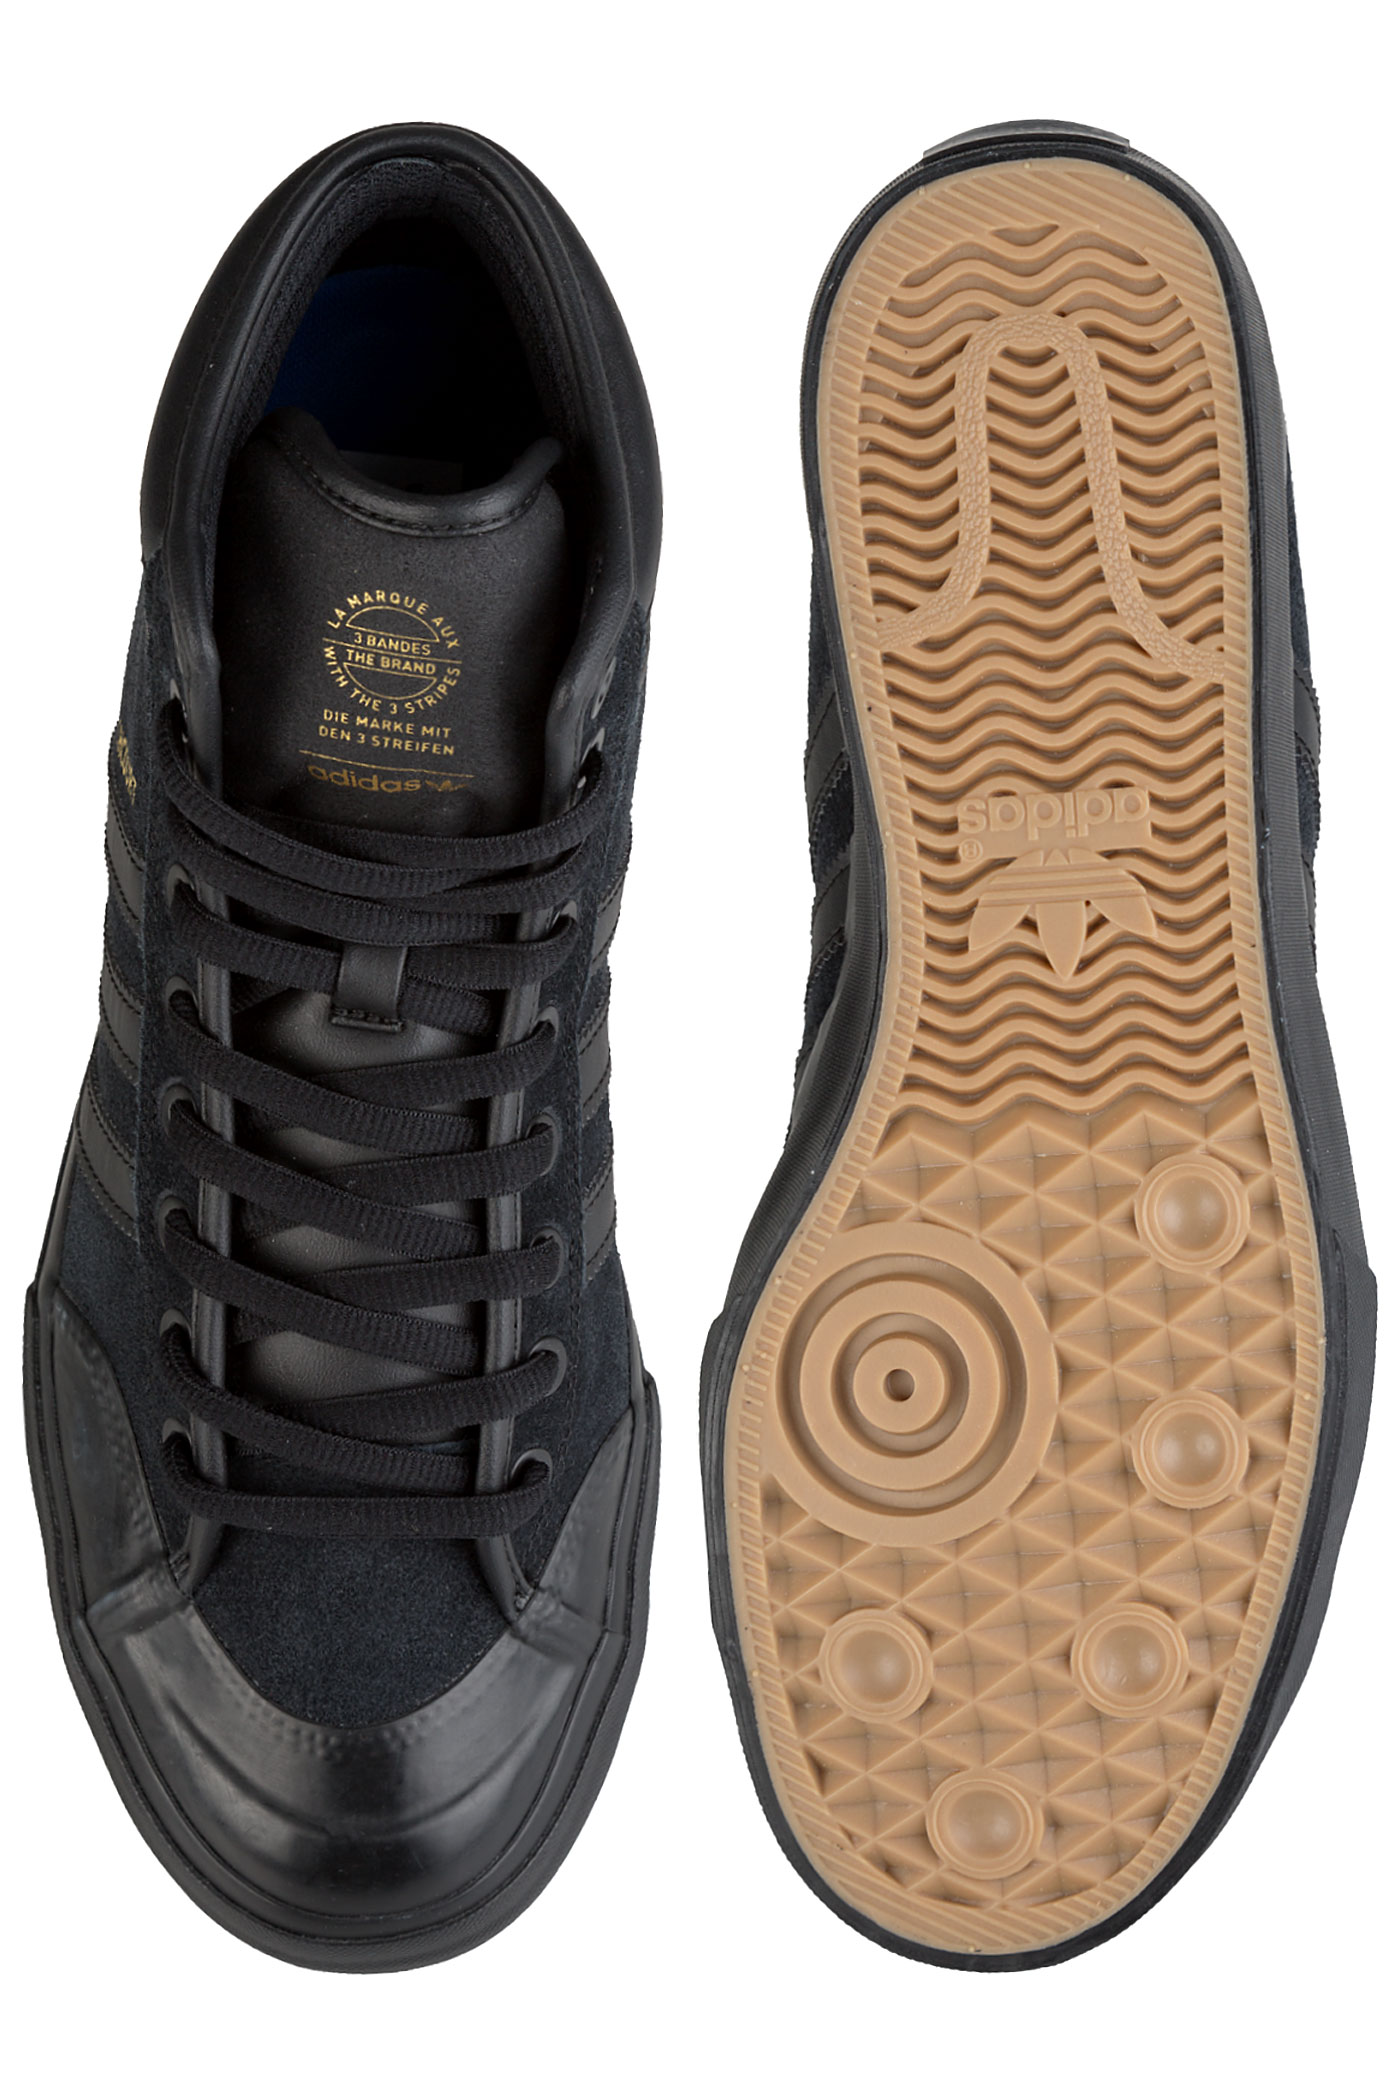 aea86c60715 ... adidas Skateboarding Matchcourt High RX2 Shoes (core black core black  gold) ...